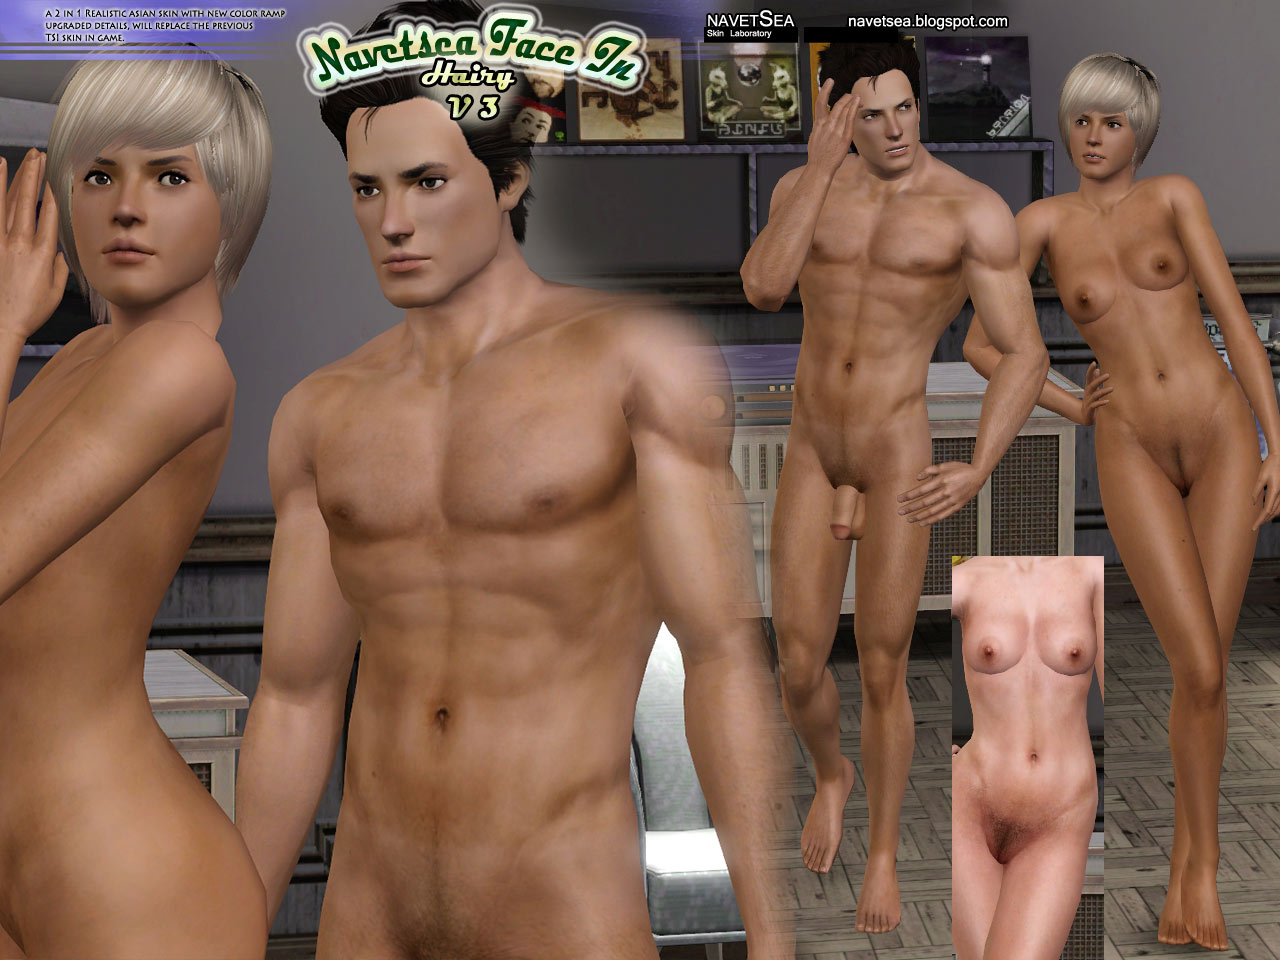 The sims 4 nudes hairy cartoon pic